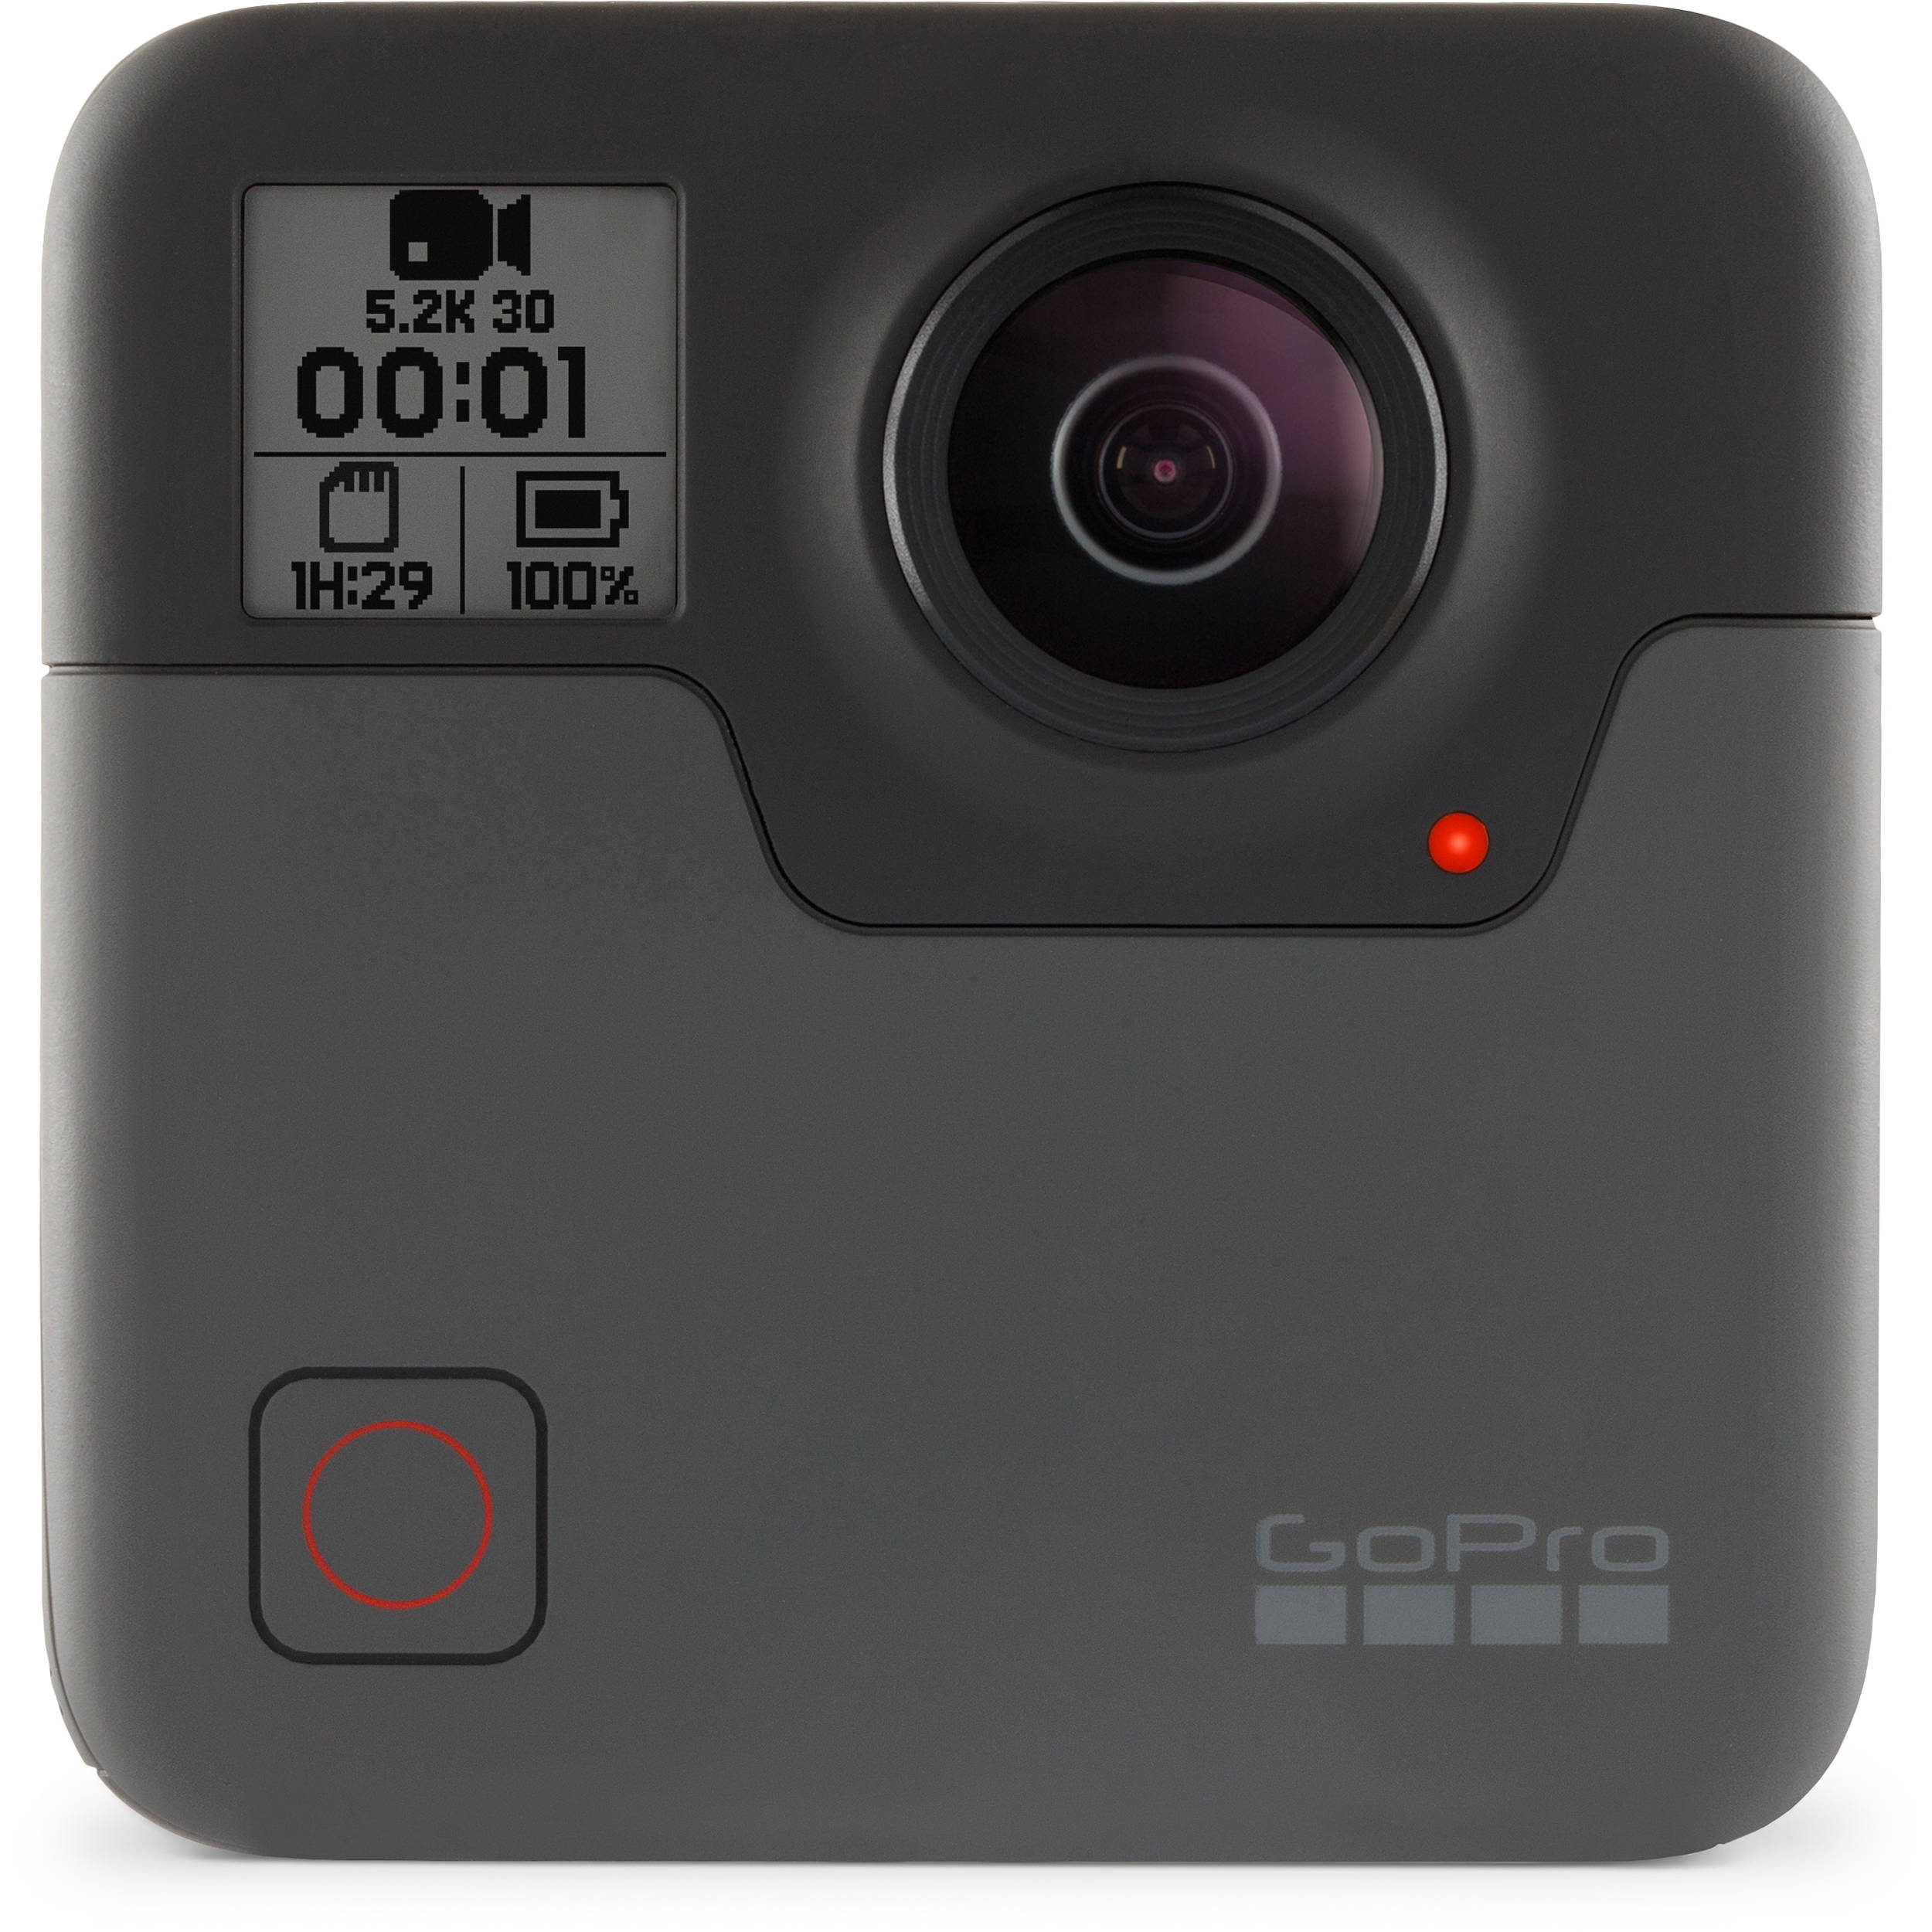 GoPro Fusion CHDHZ 103 BH Photo Video